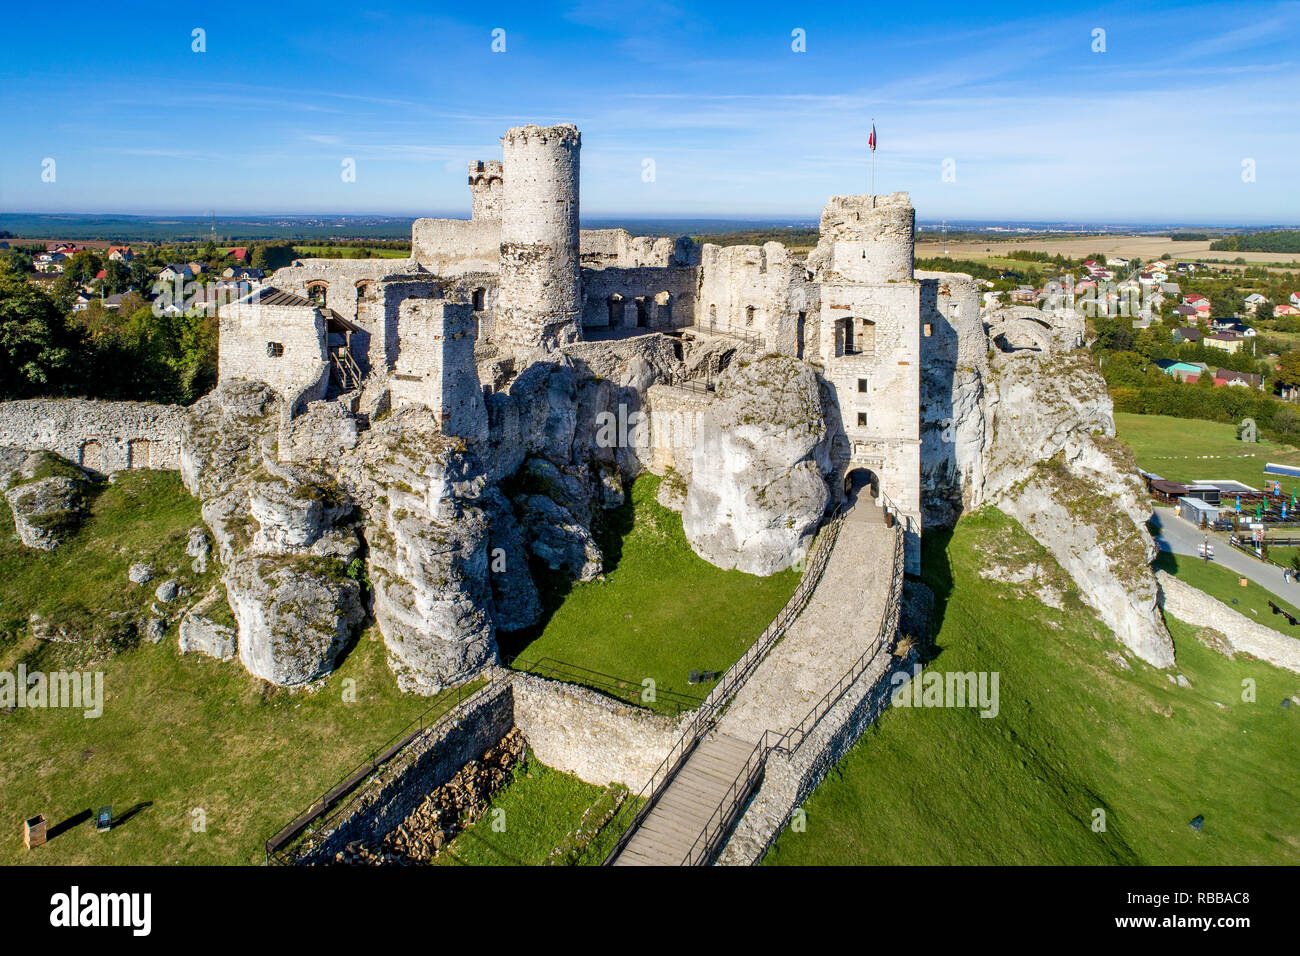 The ruins of medieval castle on the rock in Ogrodzieniec, Poland. One of strongholds  called Eagles Nests in Polish Jurassic Highland in Silesia. Stock Photo